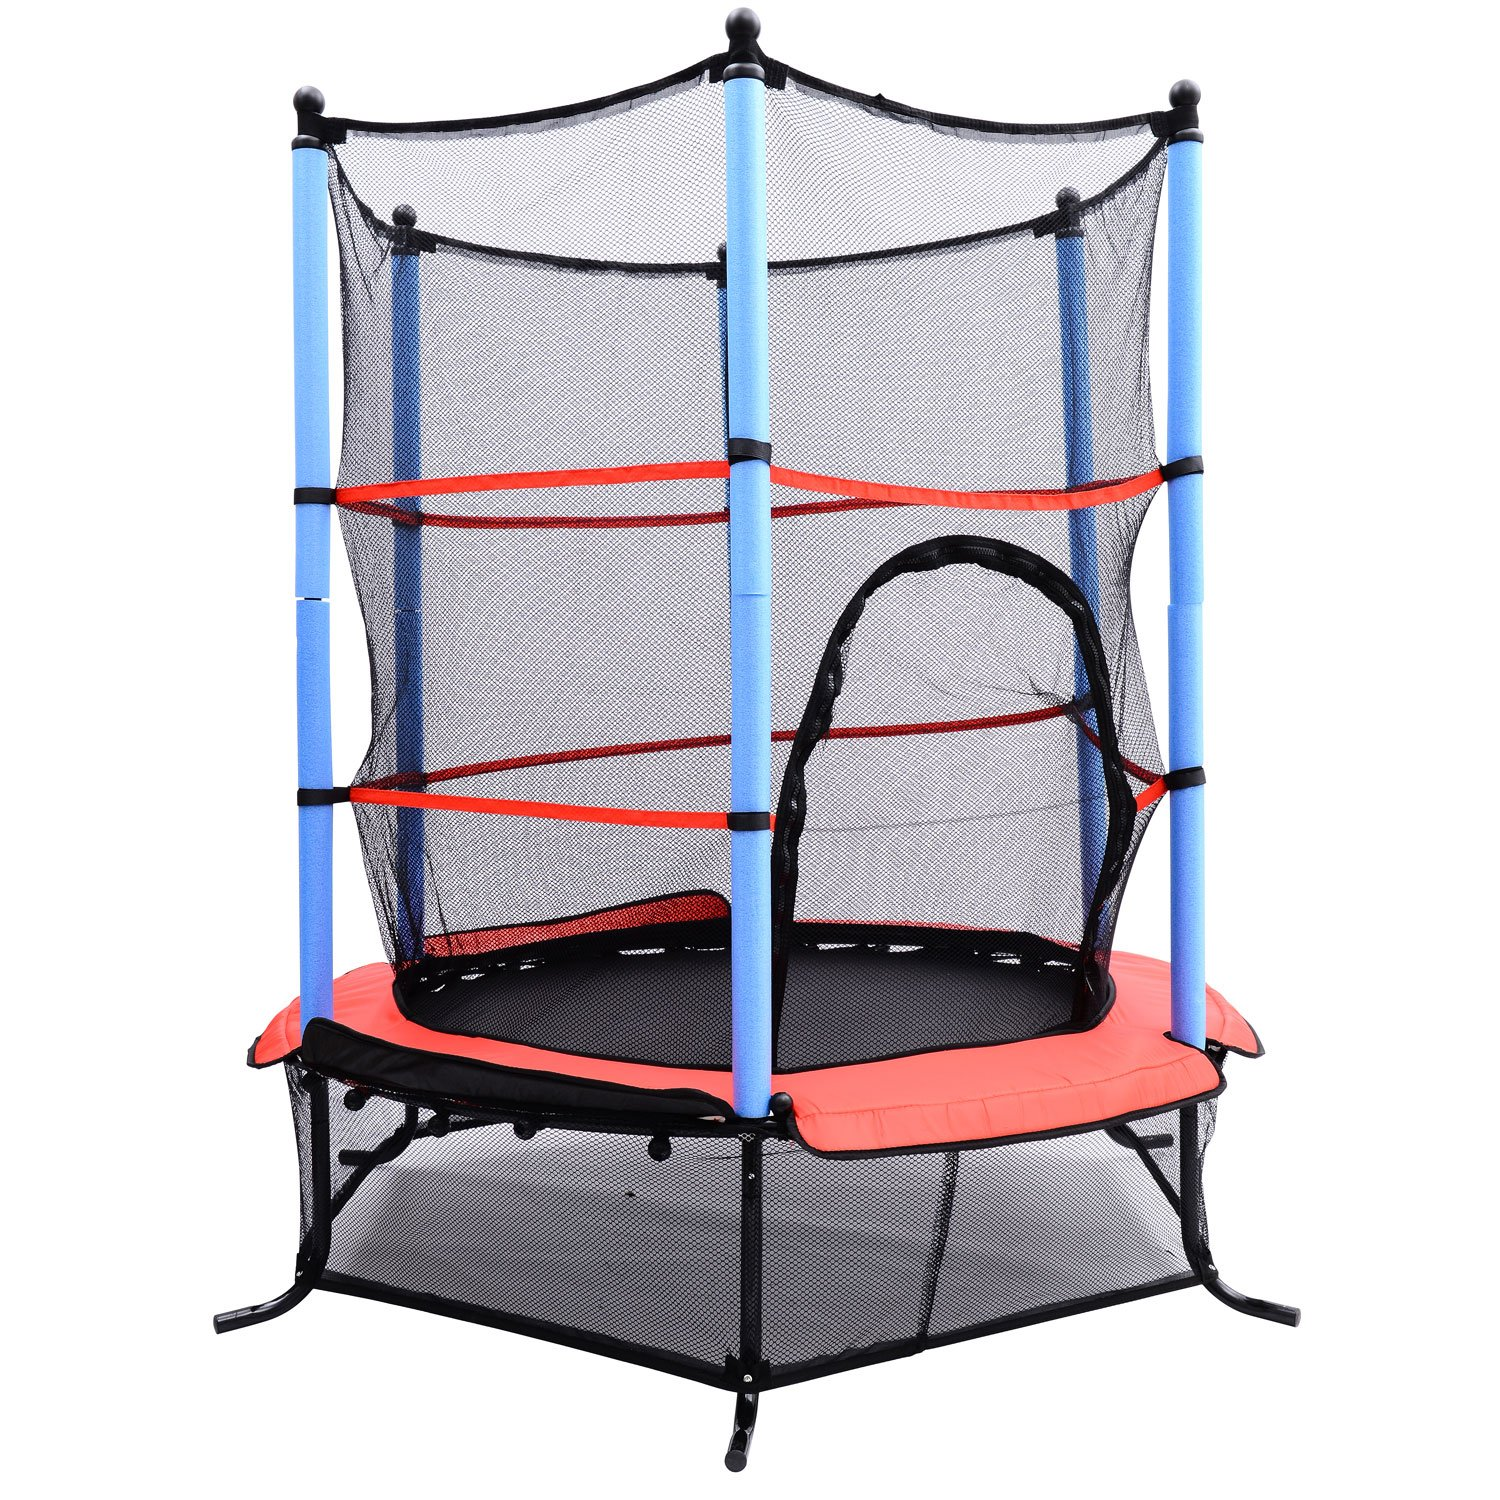 Aosom 55 Inch Children s Trampoline with Safety Enclosure Net All